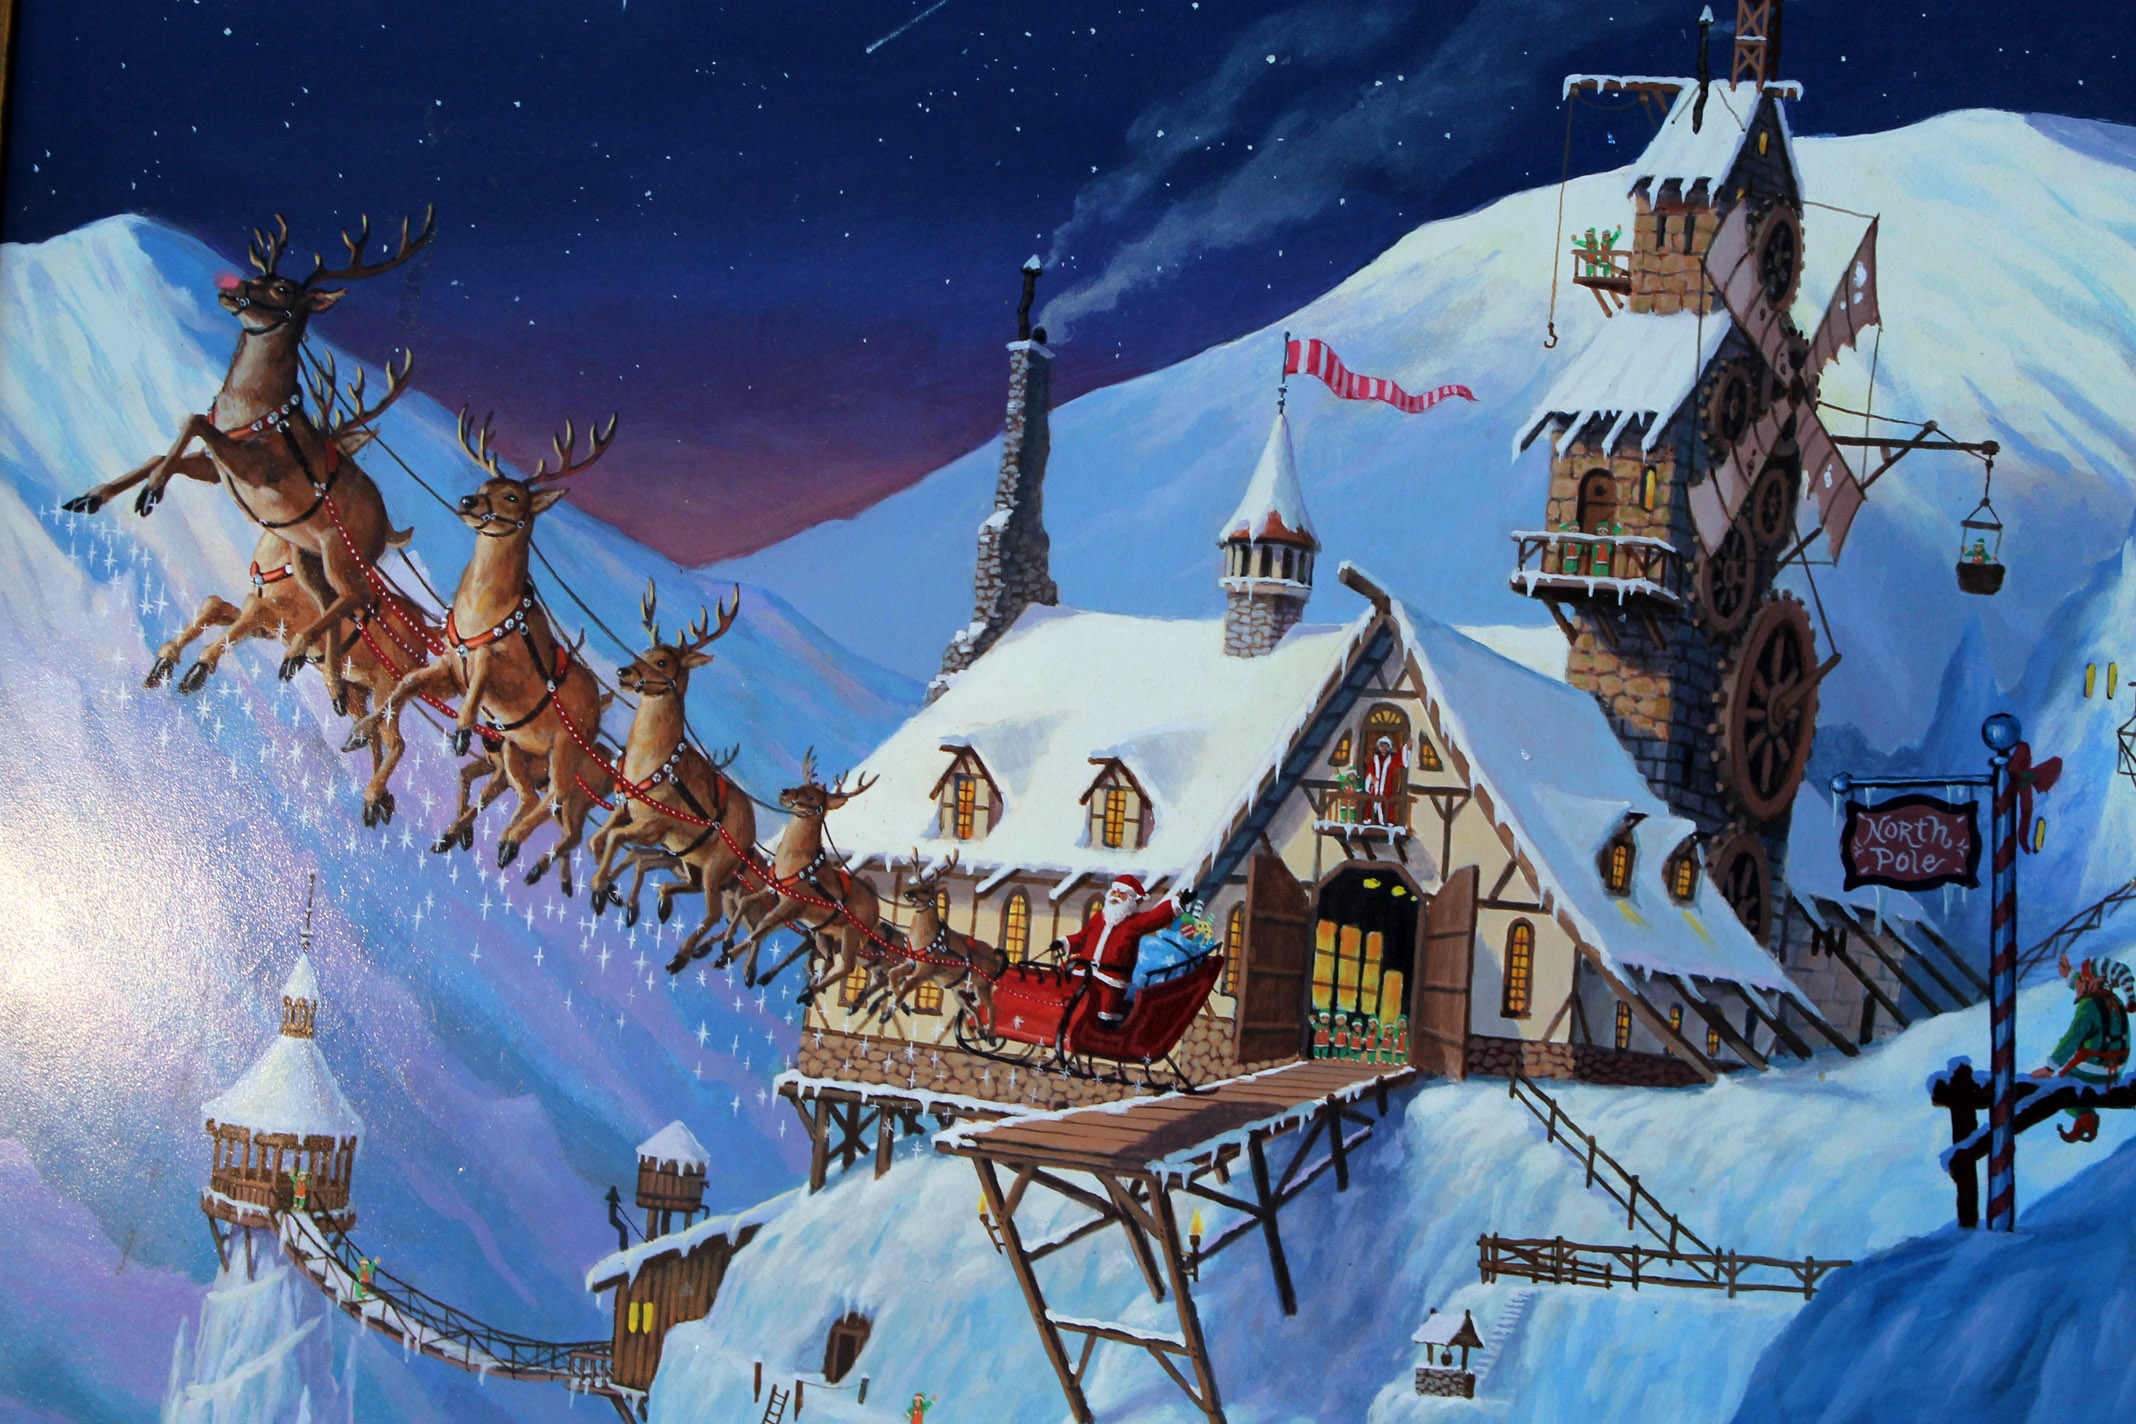 Polarized: What makes the North Pole the ideal location for Santa and his crew?